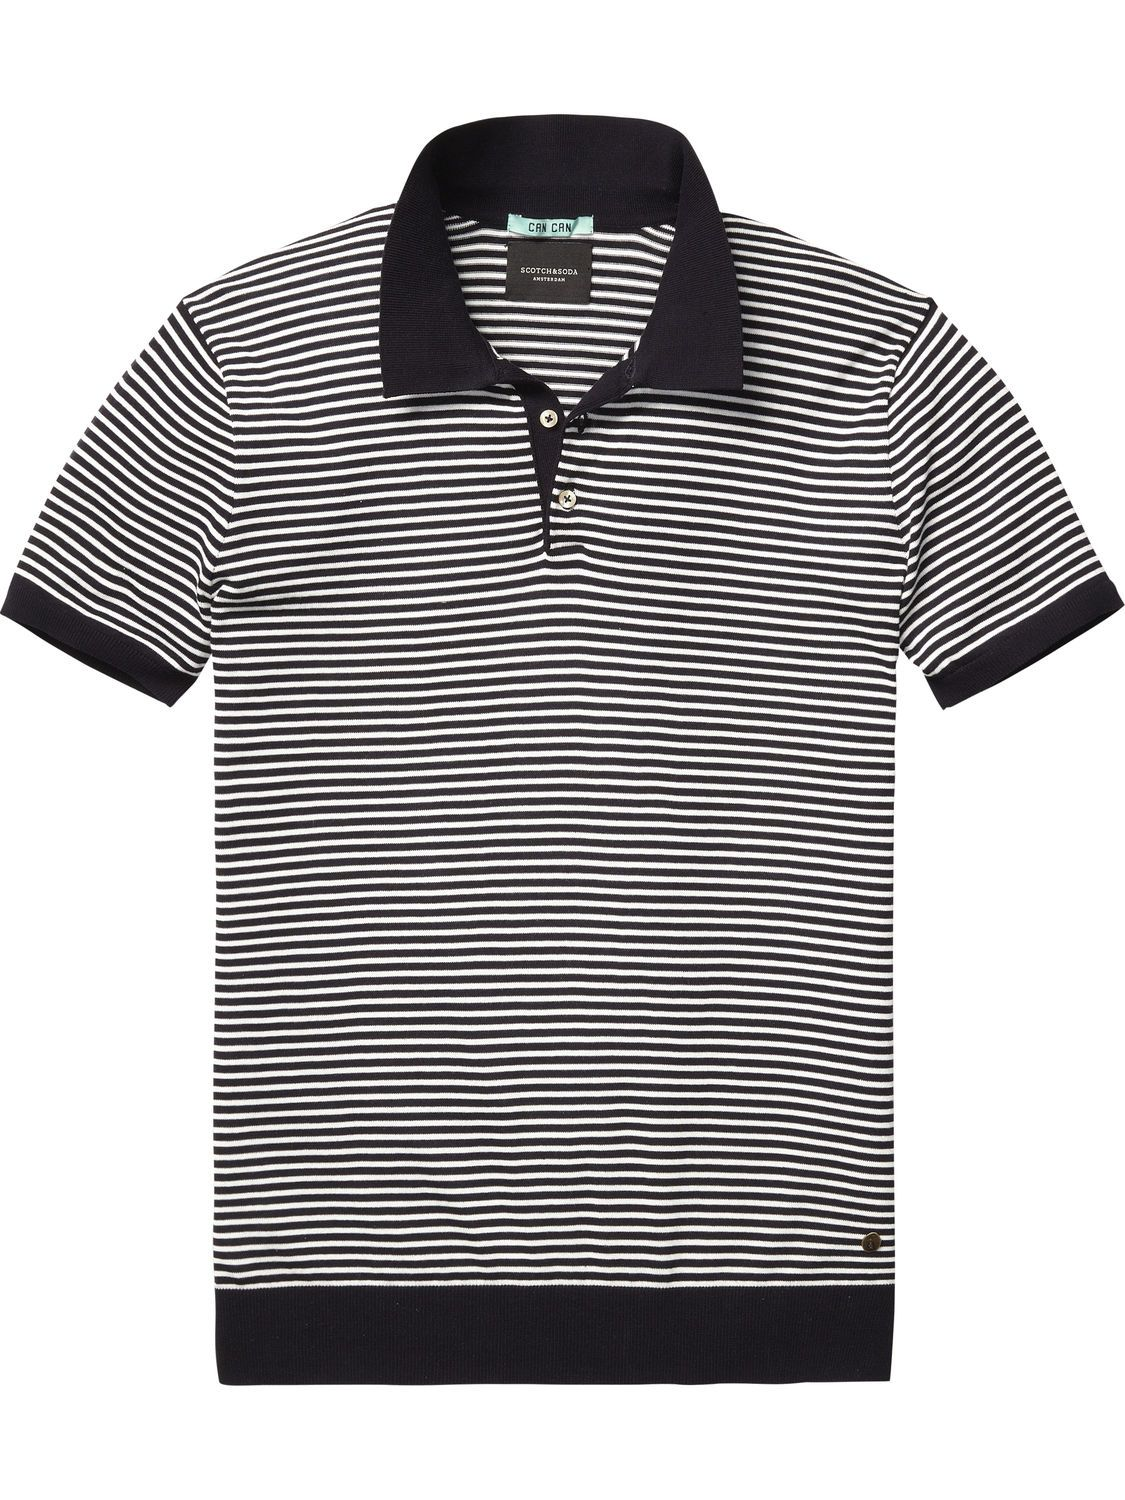 Knitted Polo Shirt |Pullover|Men Clothing at Scotch & Soda | Men's ...